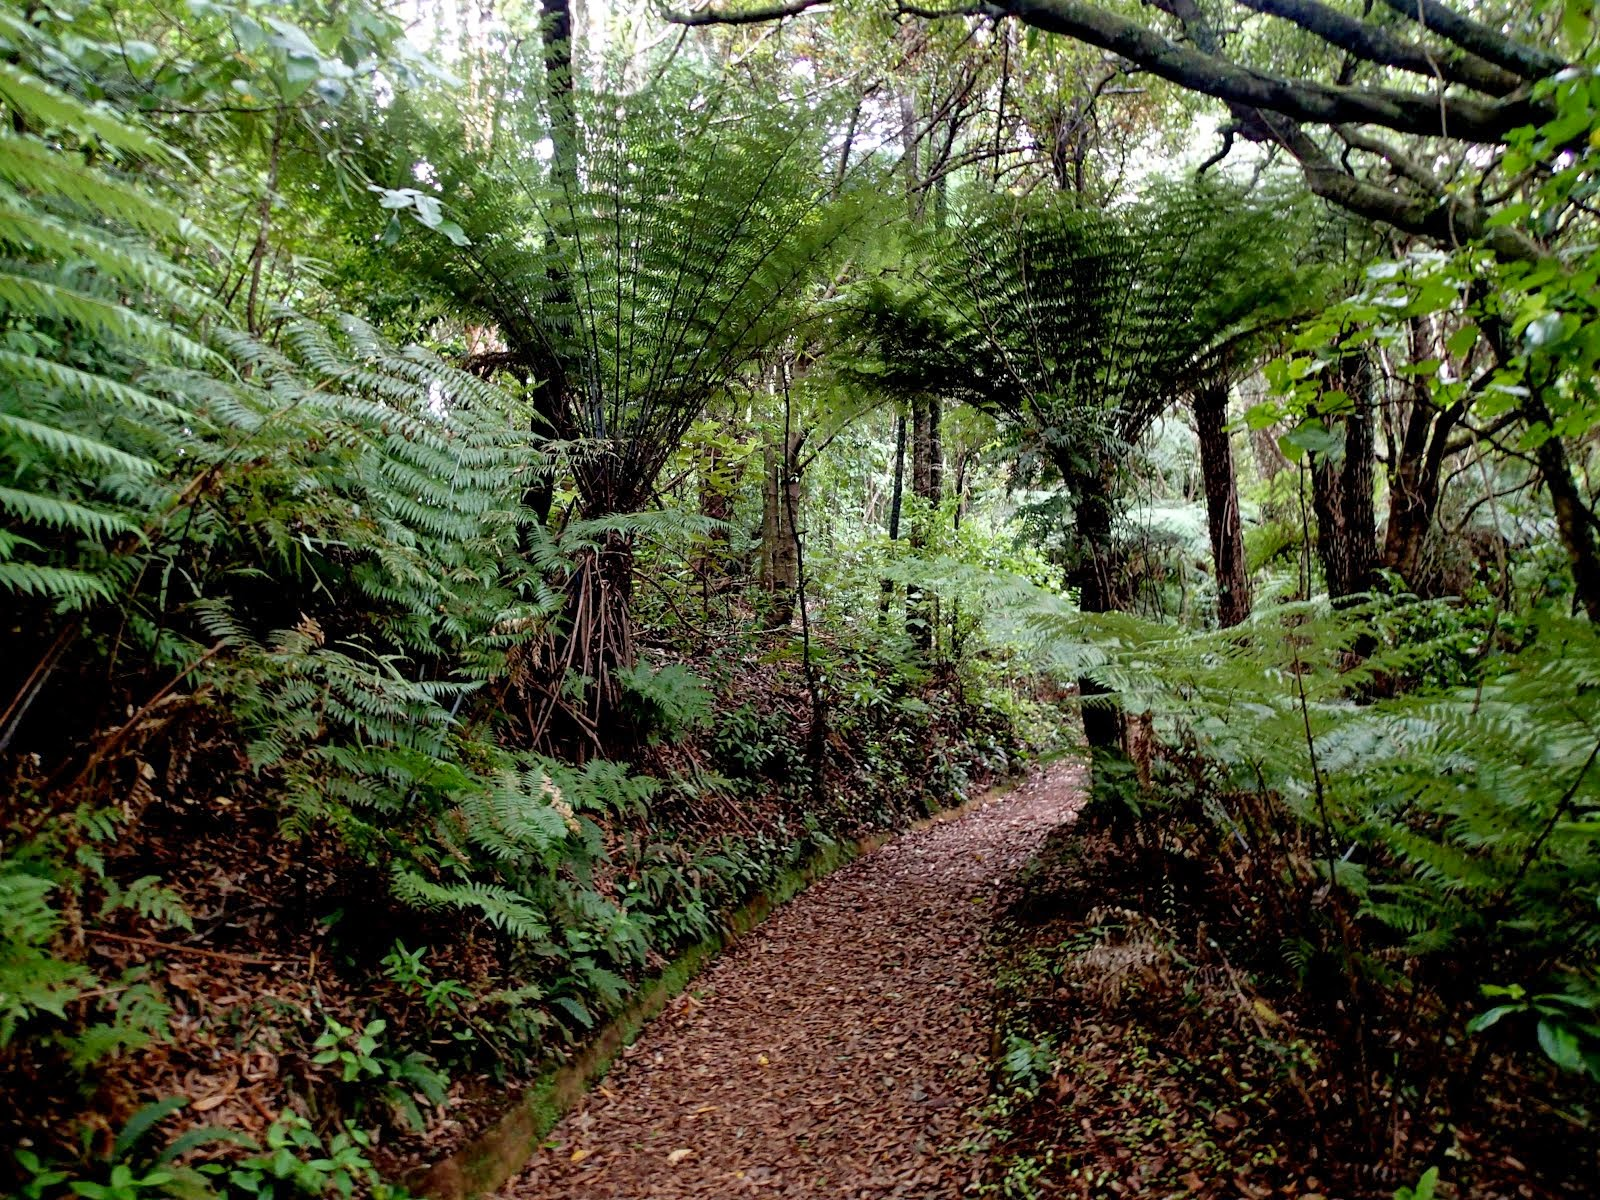 Fern walk in Otari bush